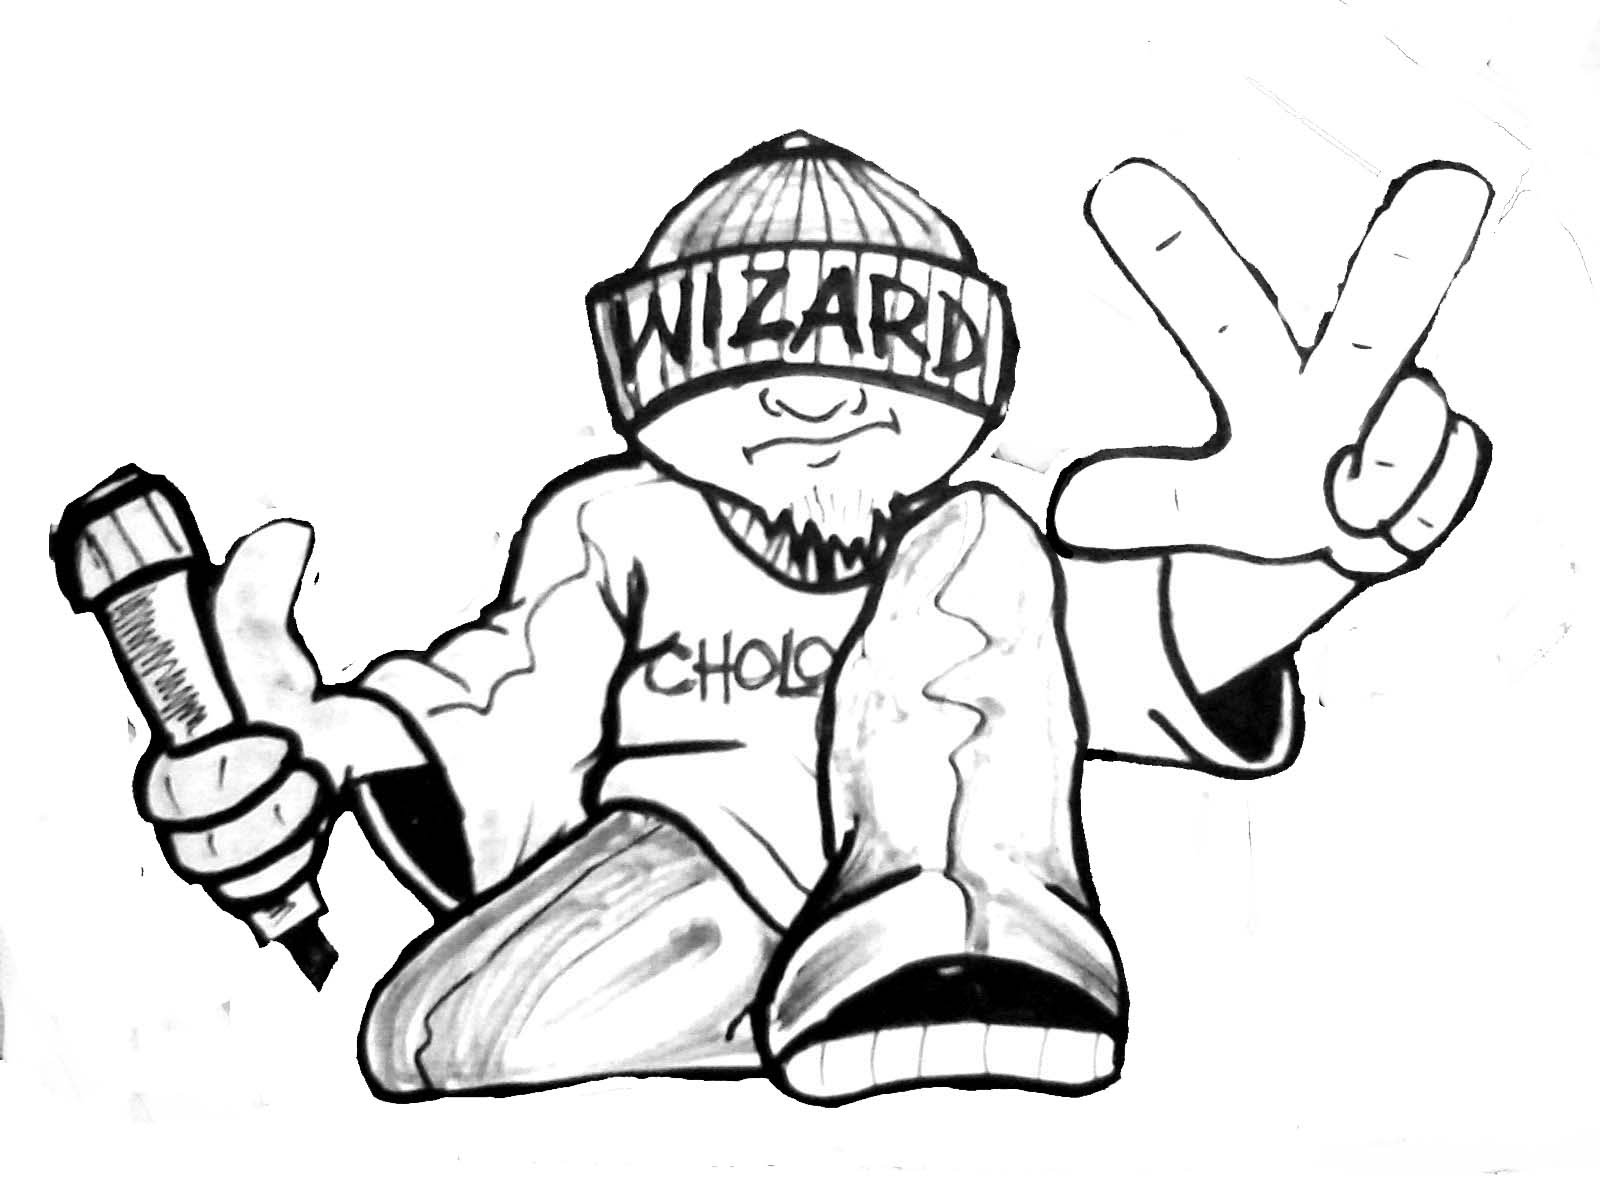 1600x1200 Drawing A Cholo Character (By Wizard) (Oldschool Mix 80'S)